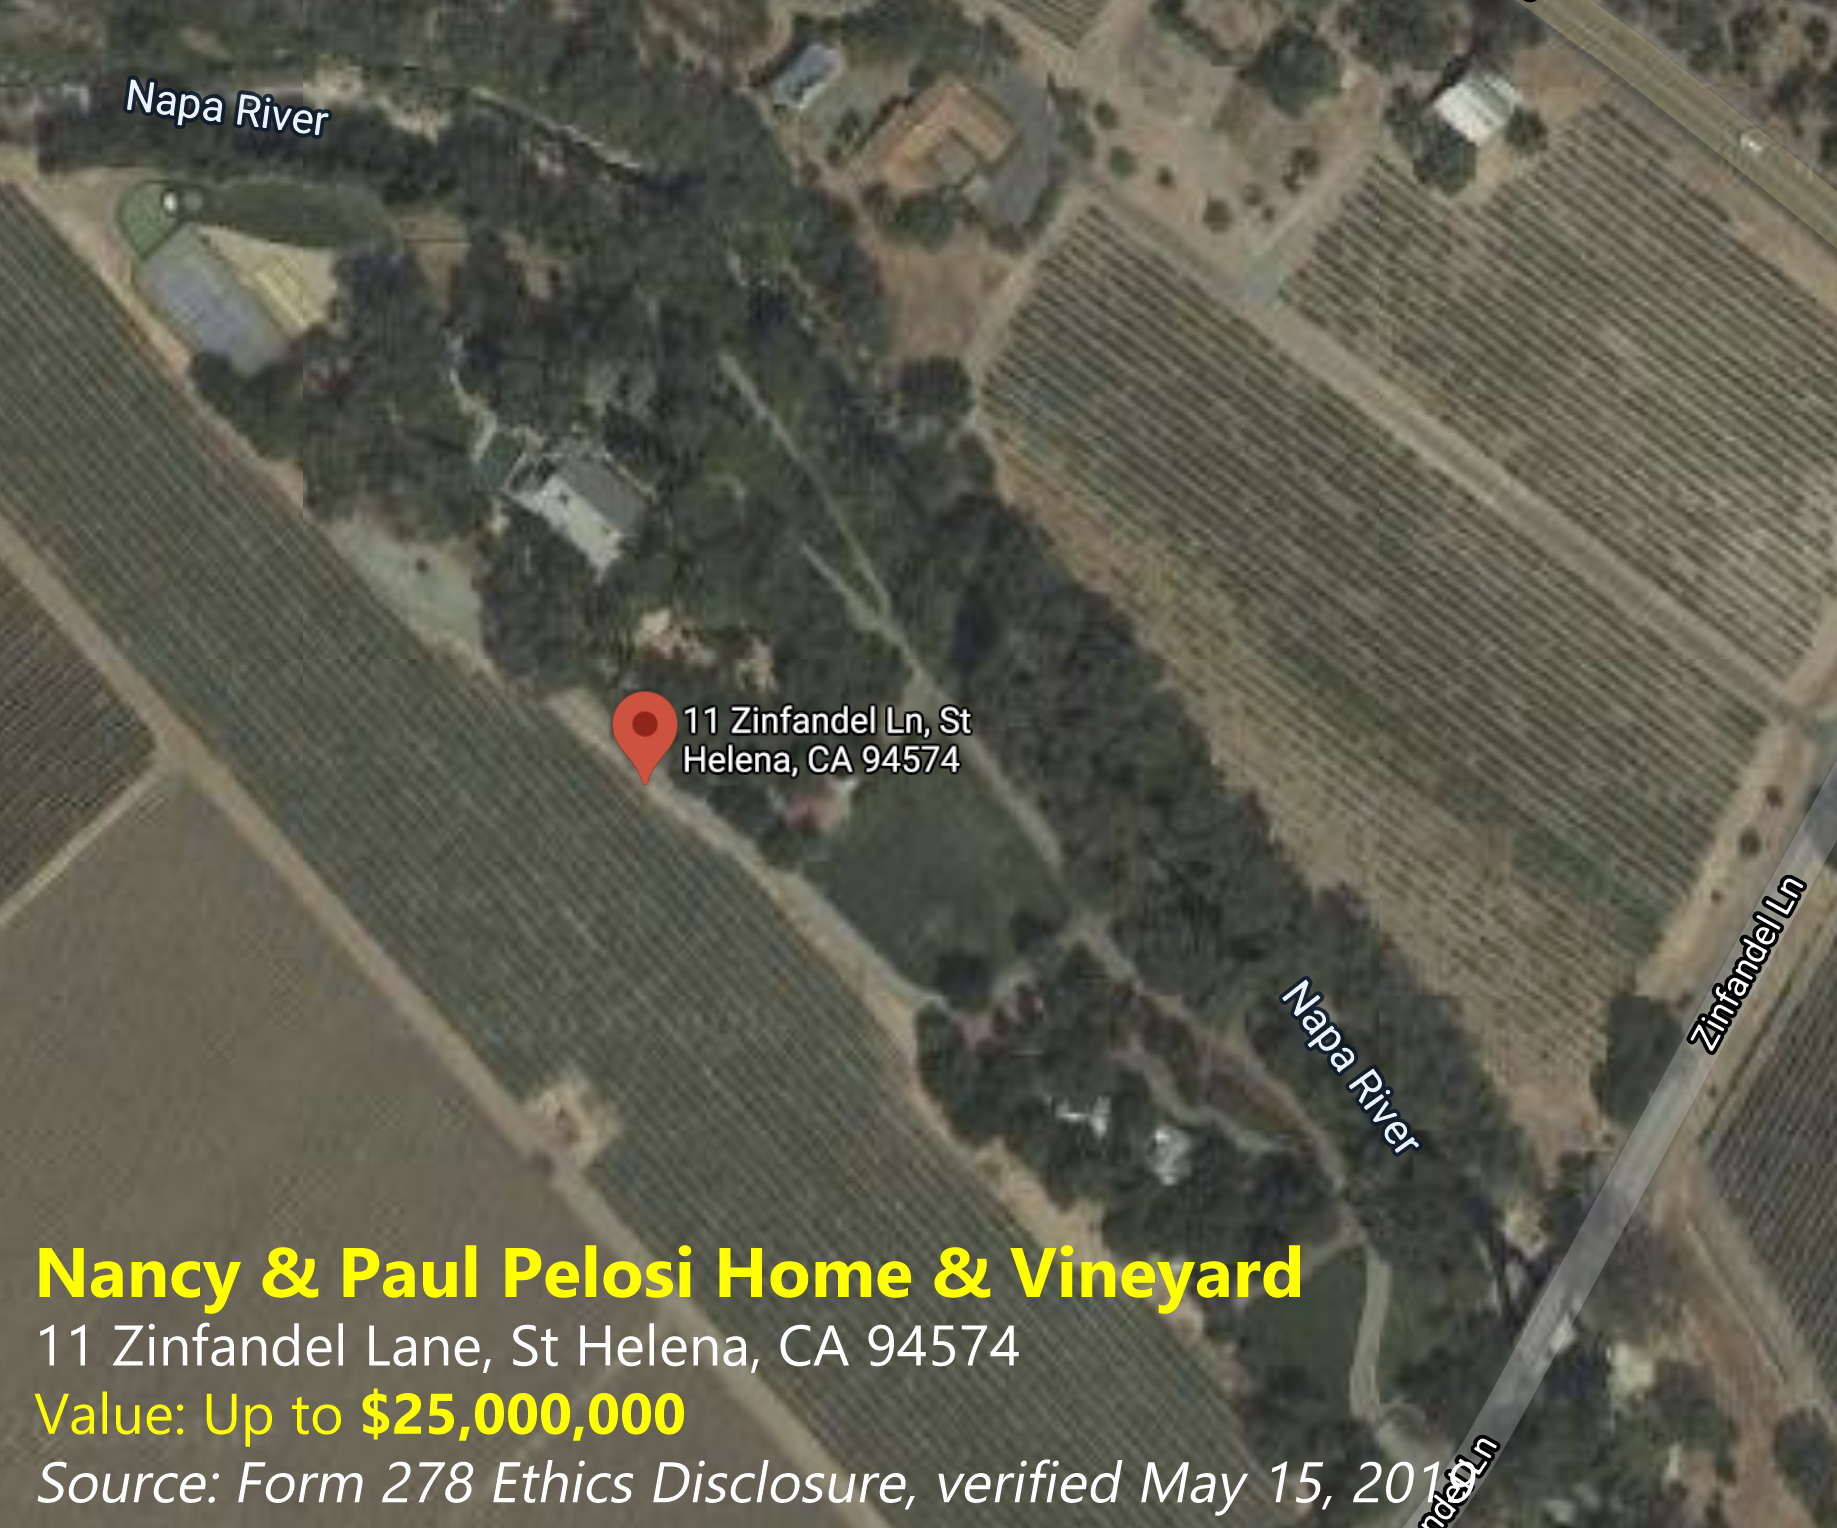 Nancy & Paul Pelosi Home & Vineyard 11 Zinfandel Lane, St Helena, CA 94574, Value: Up to $25,000,000, Source: Form 278 Ethics Disclosure, verified May 15, 2019